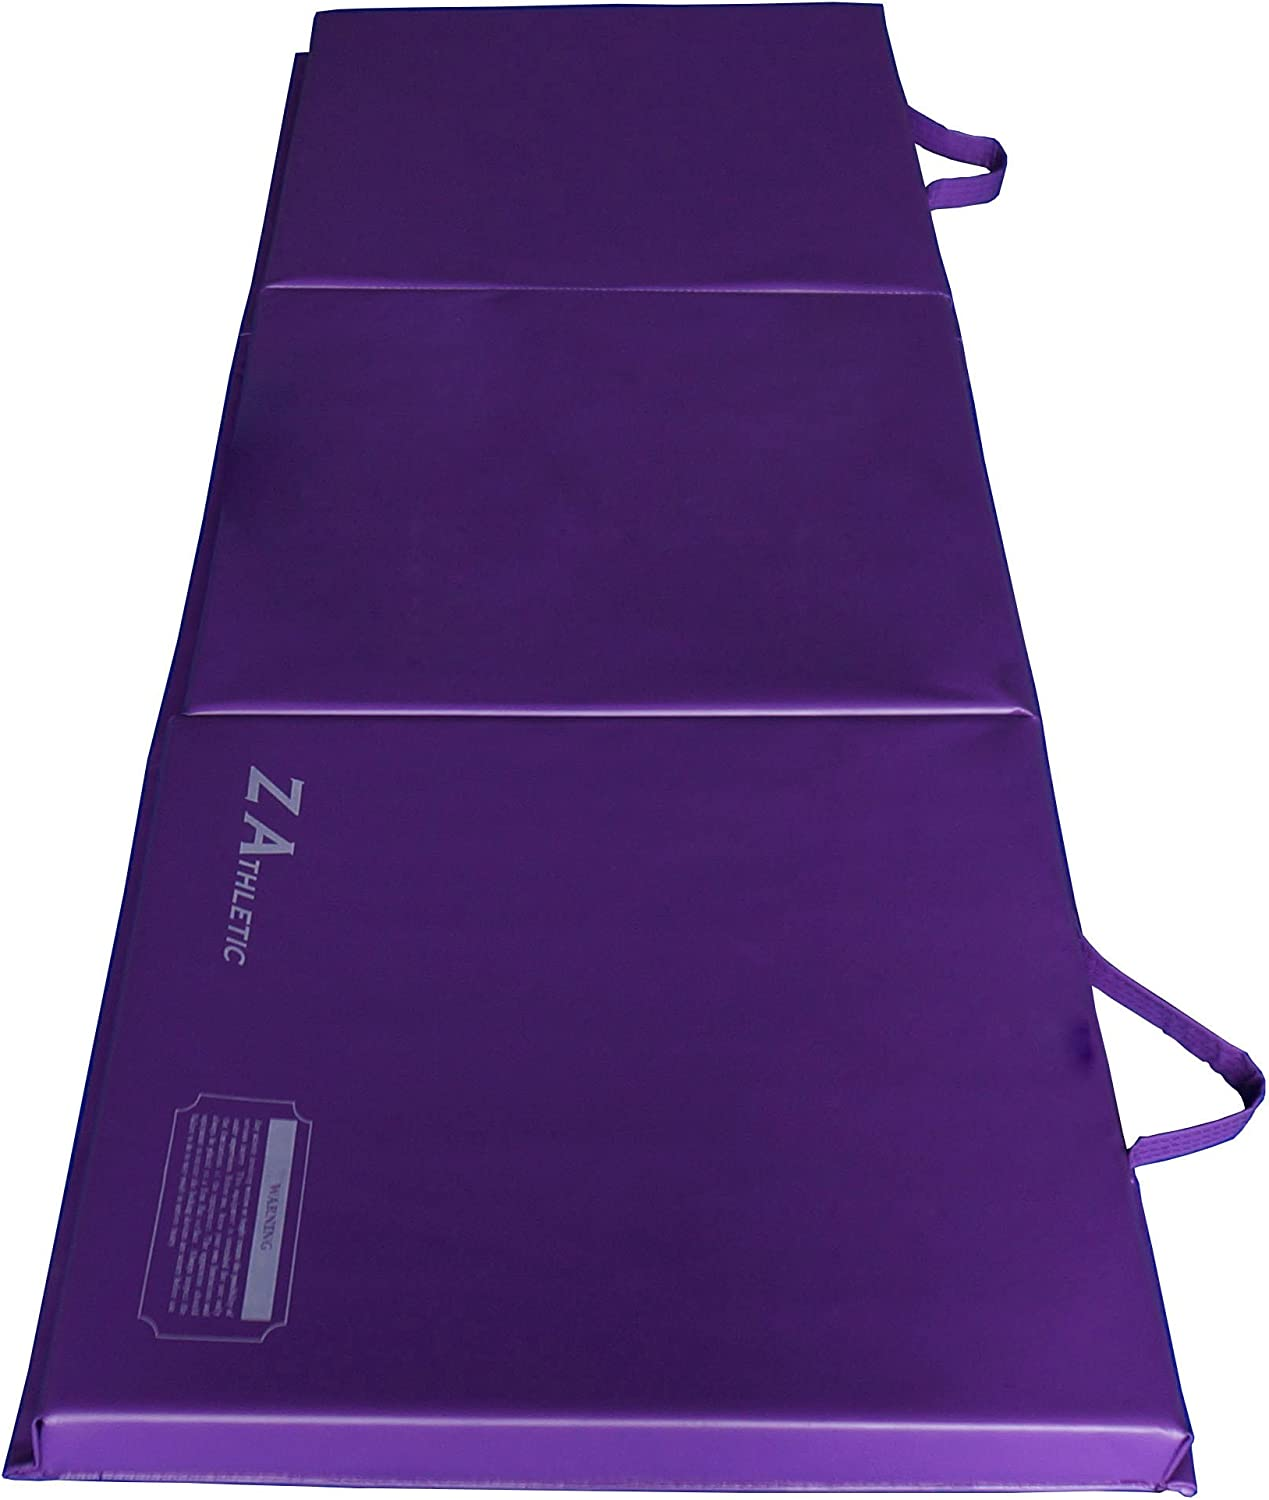 Z Athletic 2ft Wide 6ft Long Gymnastics Mat for Tumbling, Yoga, Pilates, Calisthenics Multiple Colors